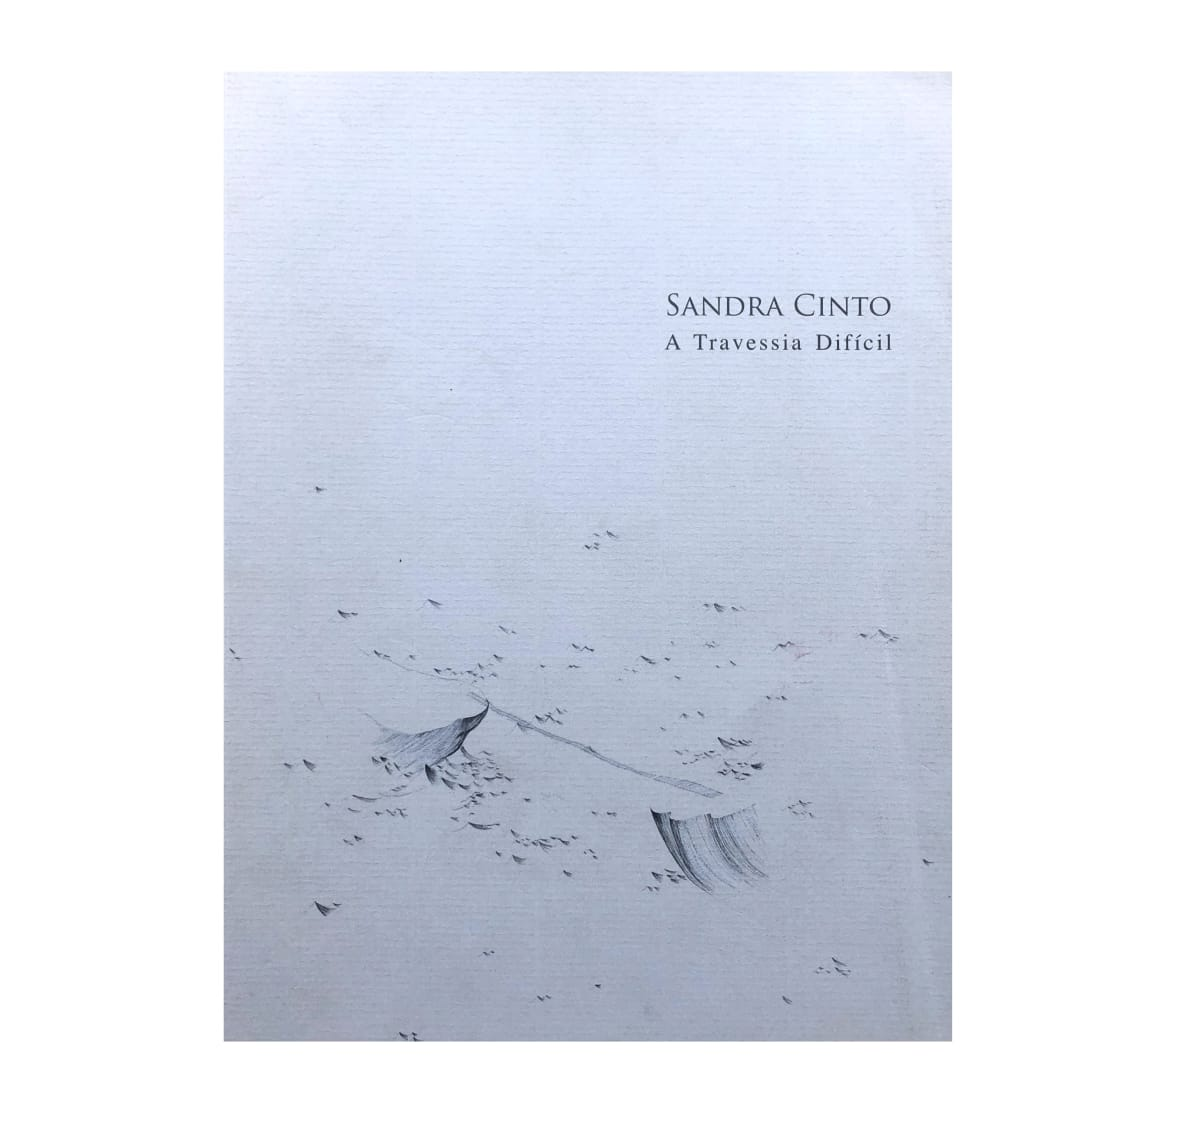 "Exhibition catalogue cover. Delicate illustration of waves on a light blue background. Black title text: ""Sandra Cinto, A Travessia Difícil"""